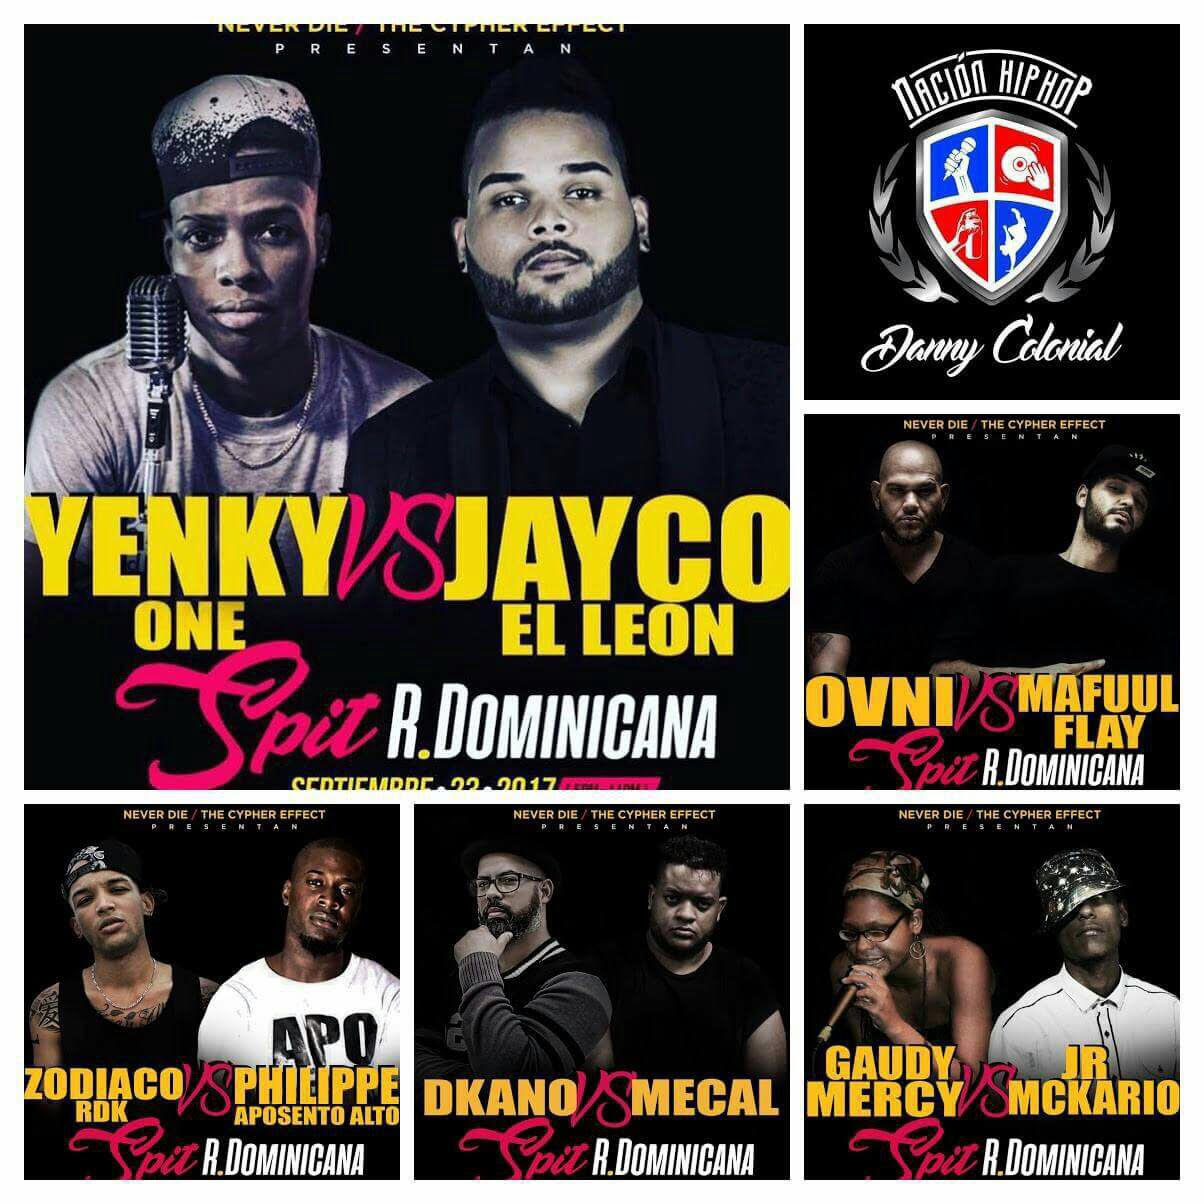 Spit R.Dominicana